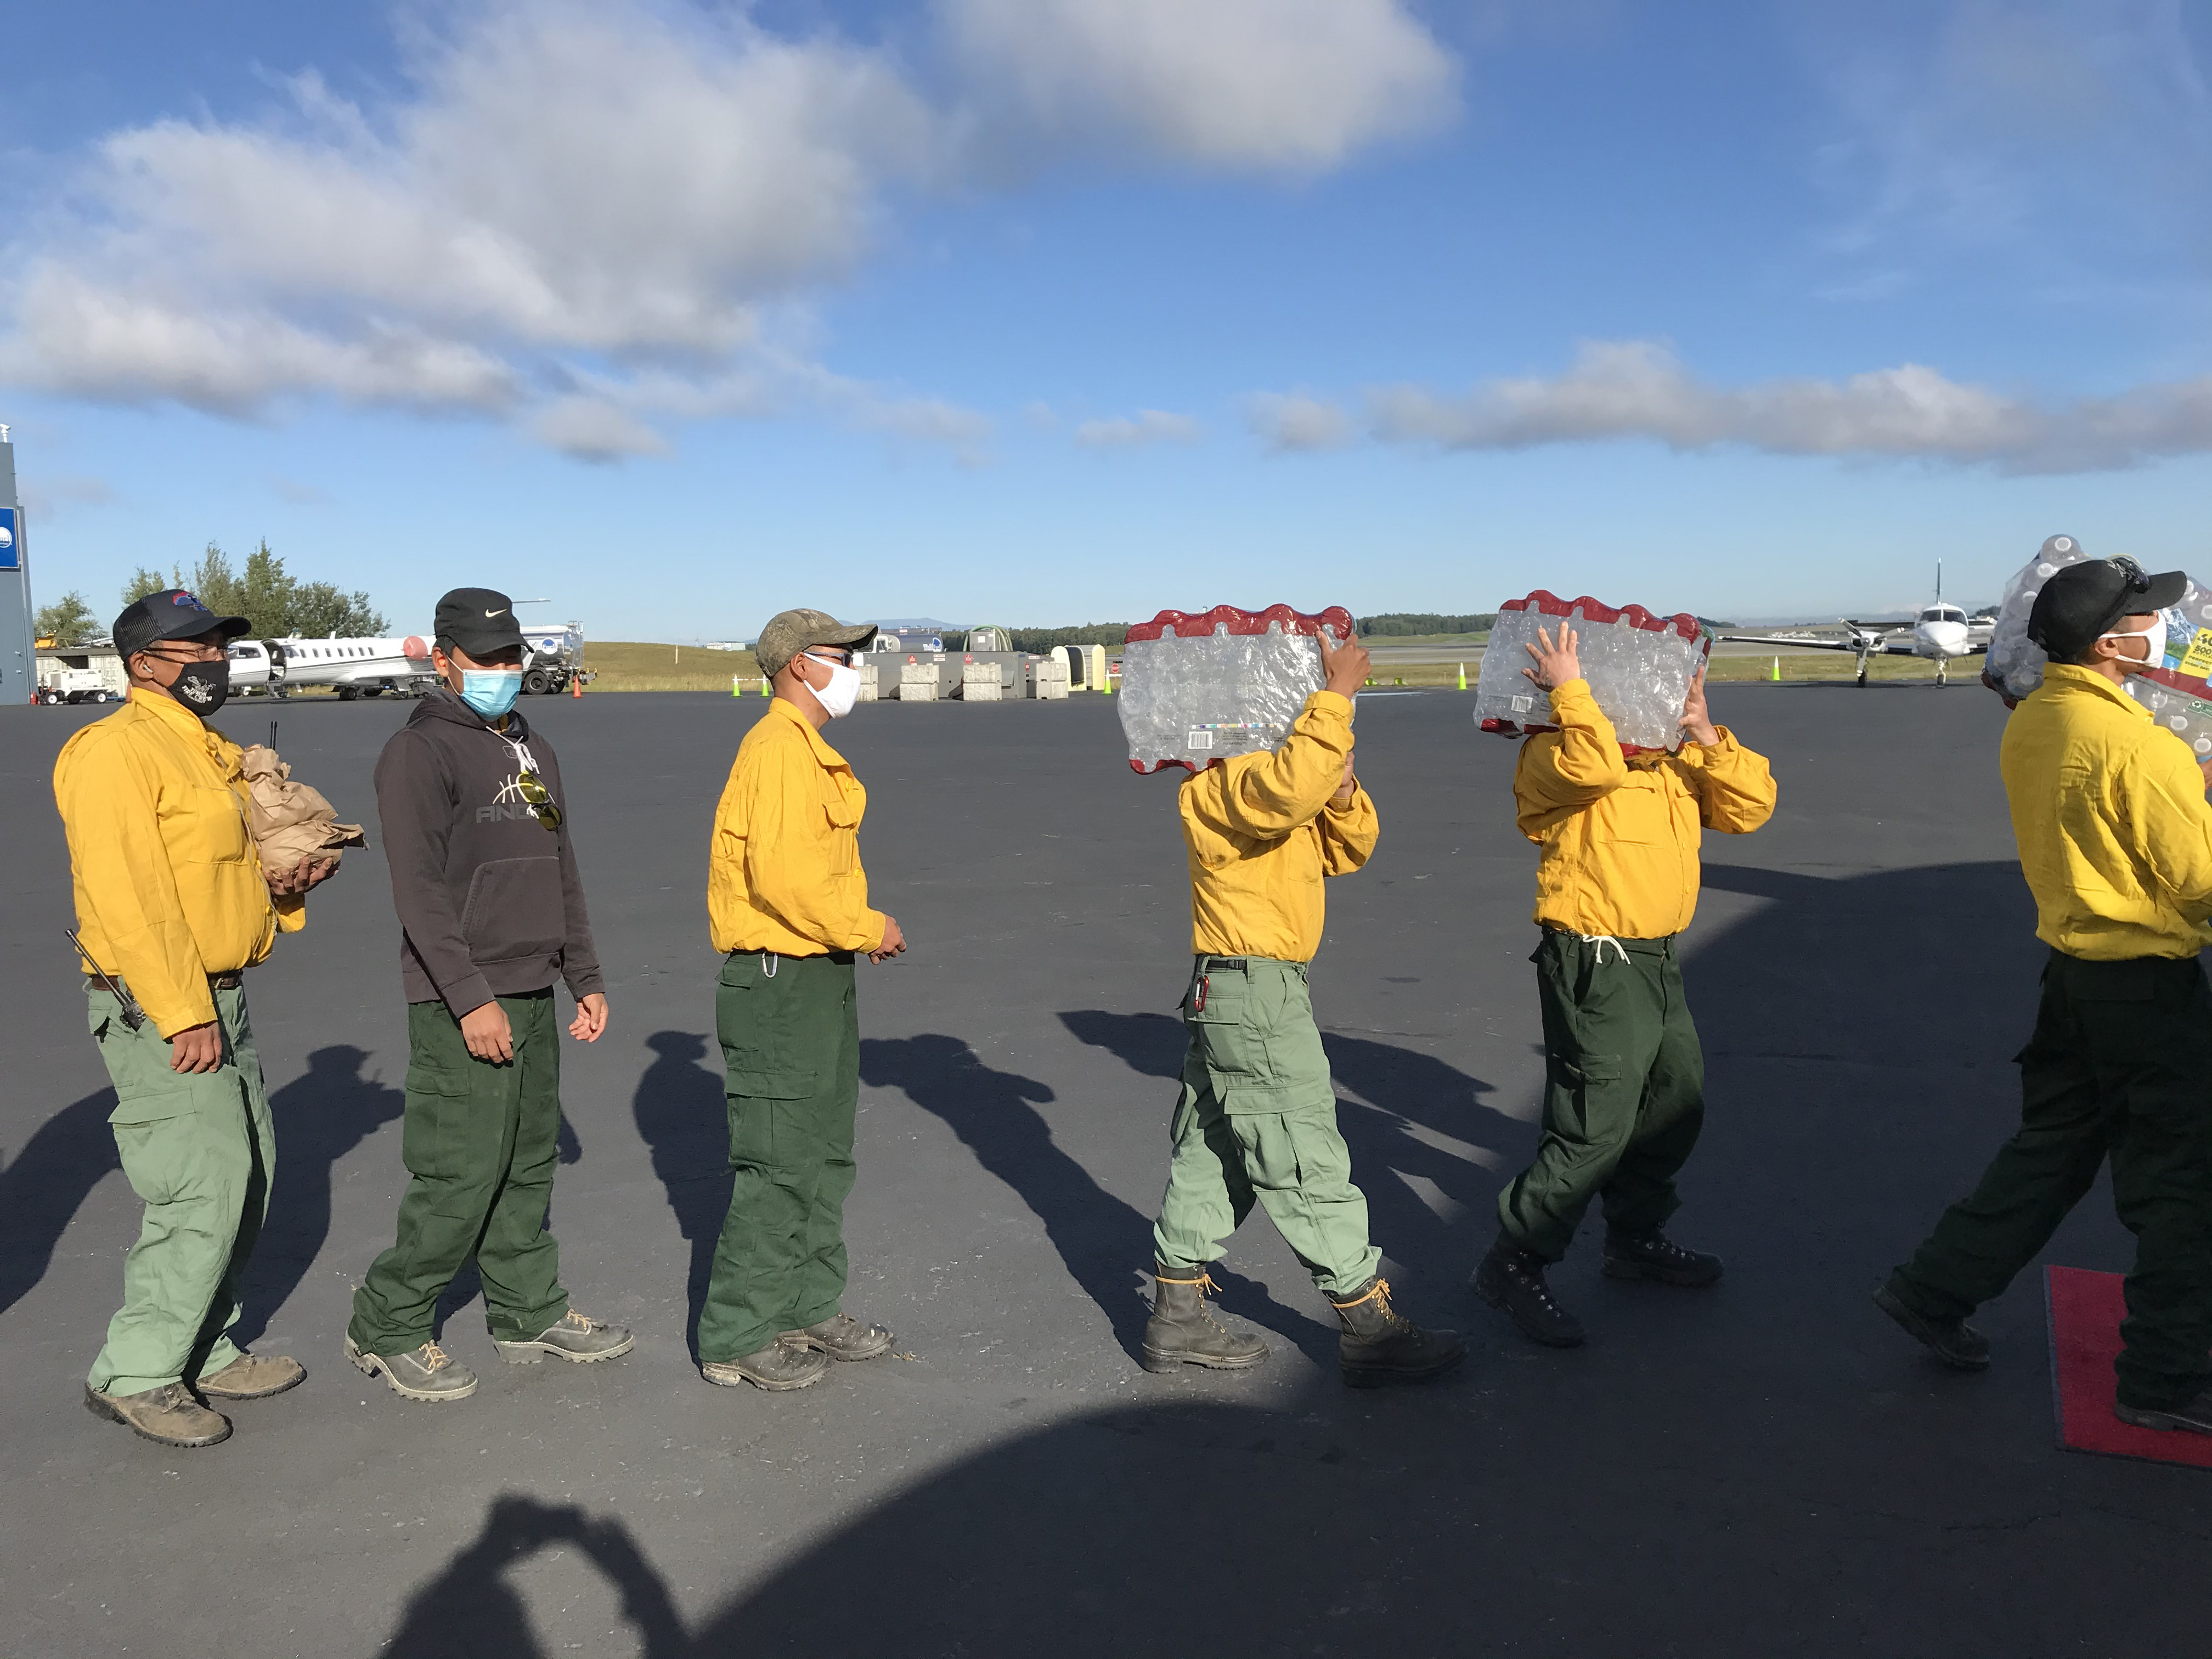 Firefighters in a line on a tarmac.